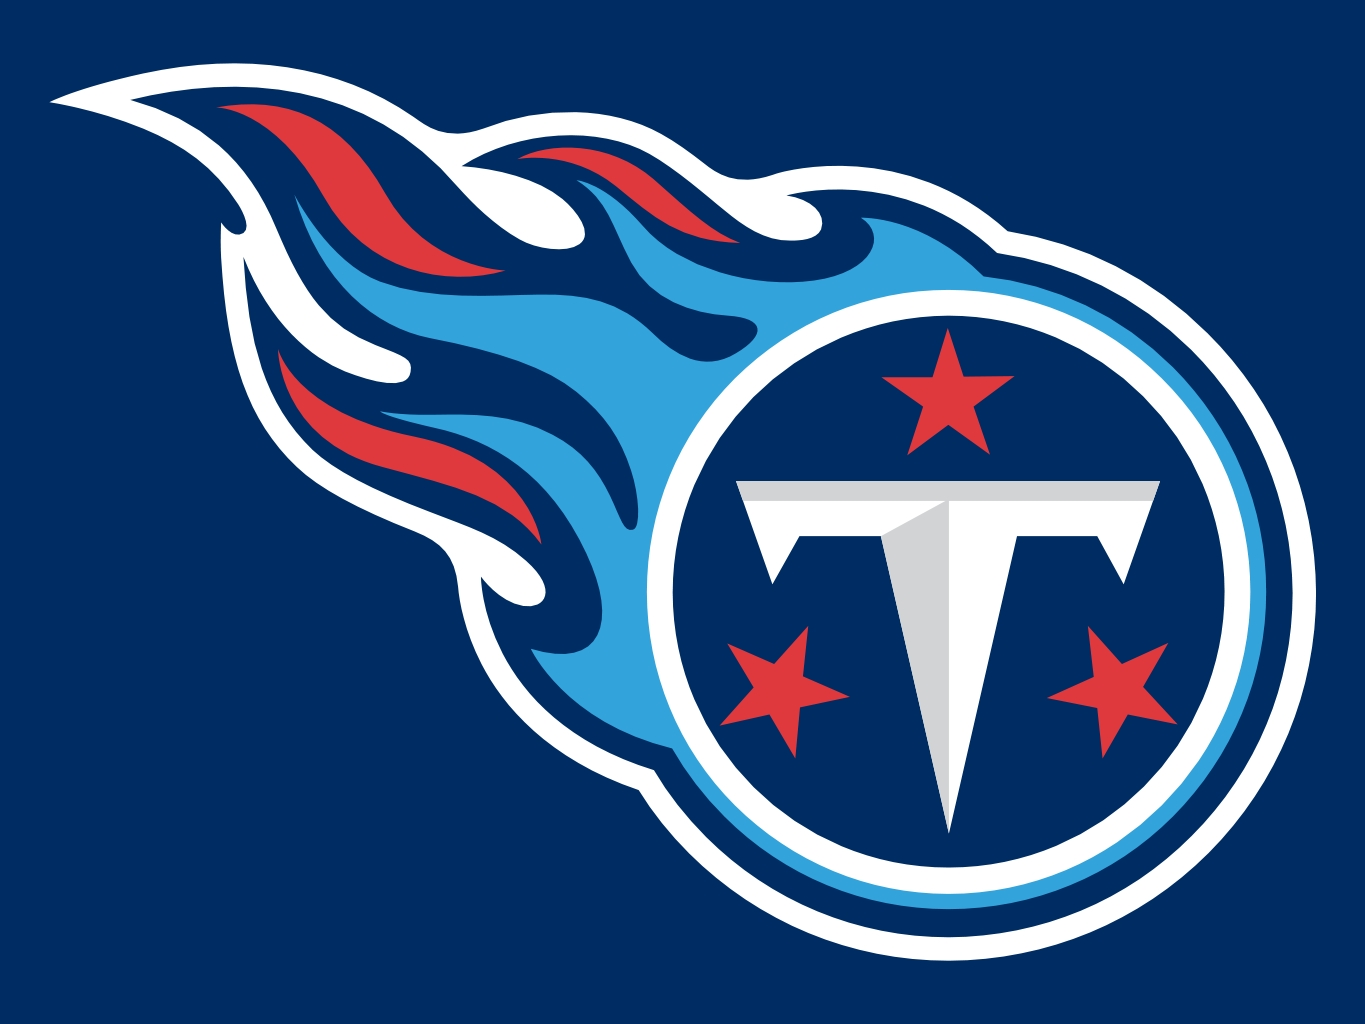 Tennessee titans pro sports teams wiki fandom powered by wikia tennessee titans team logo publicscrutiny Gallery